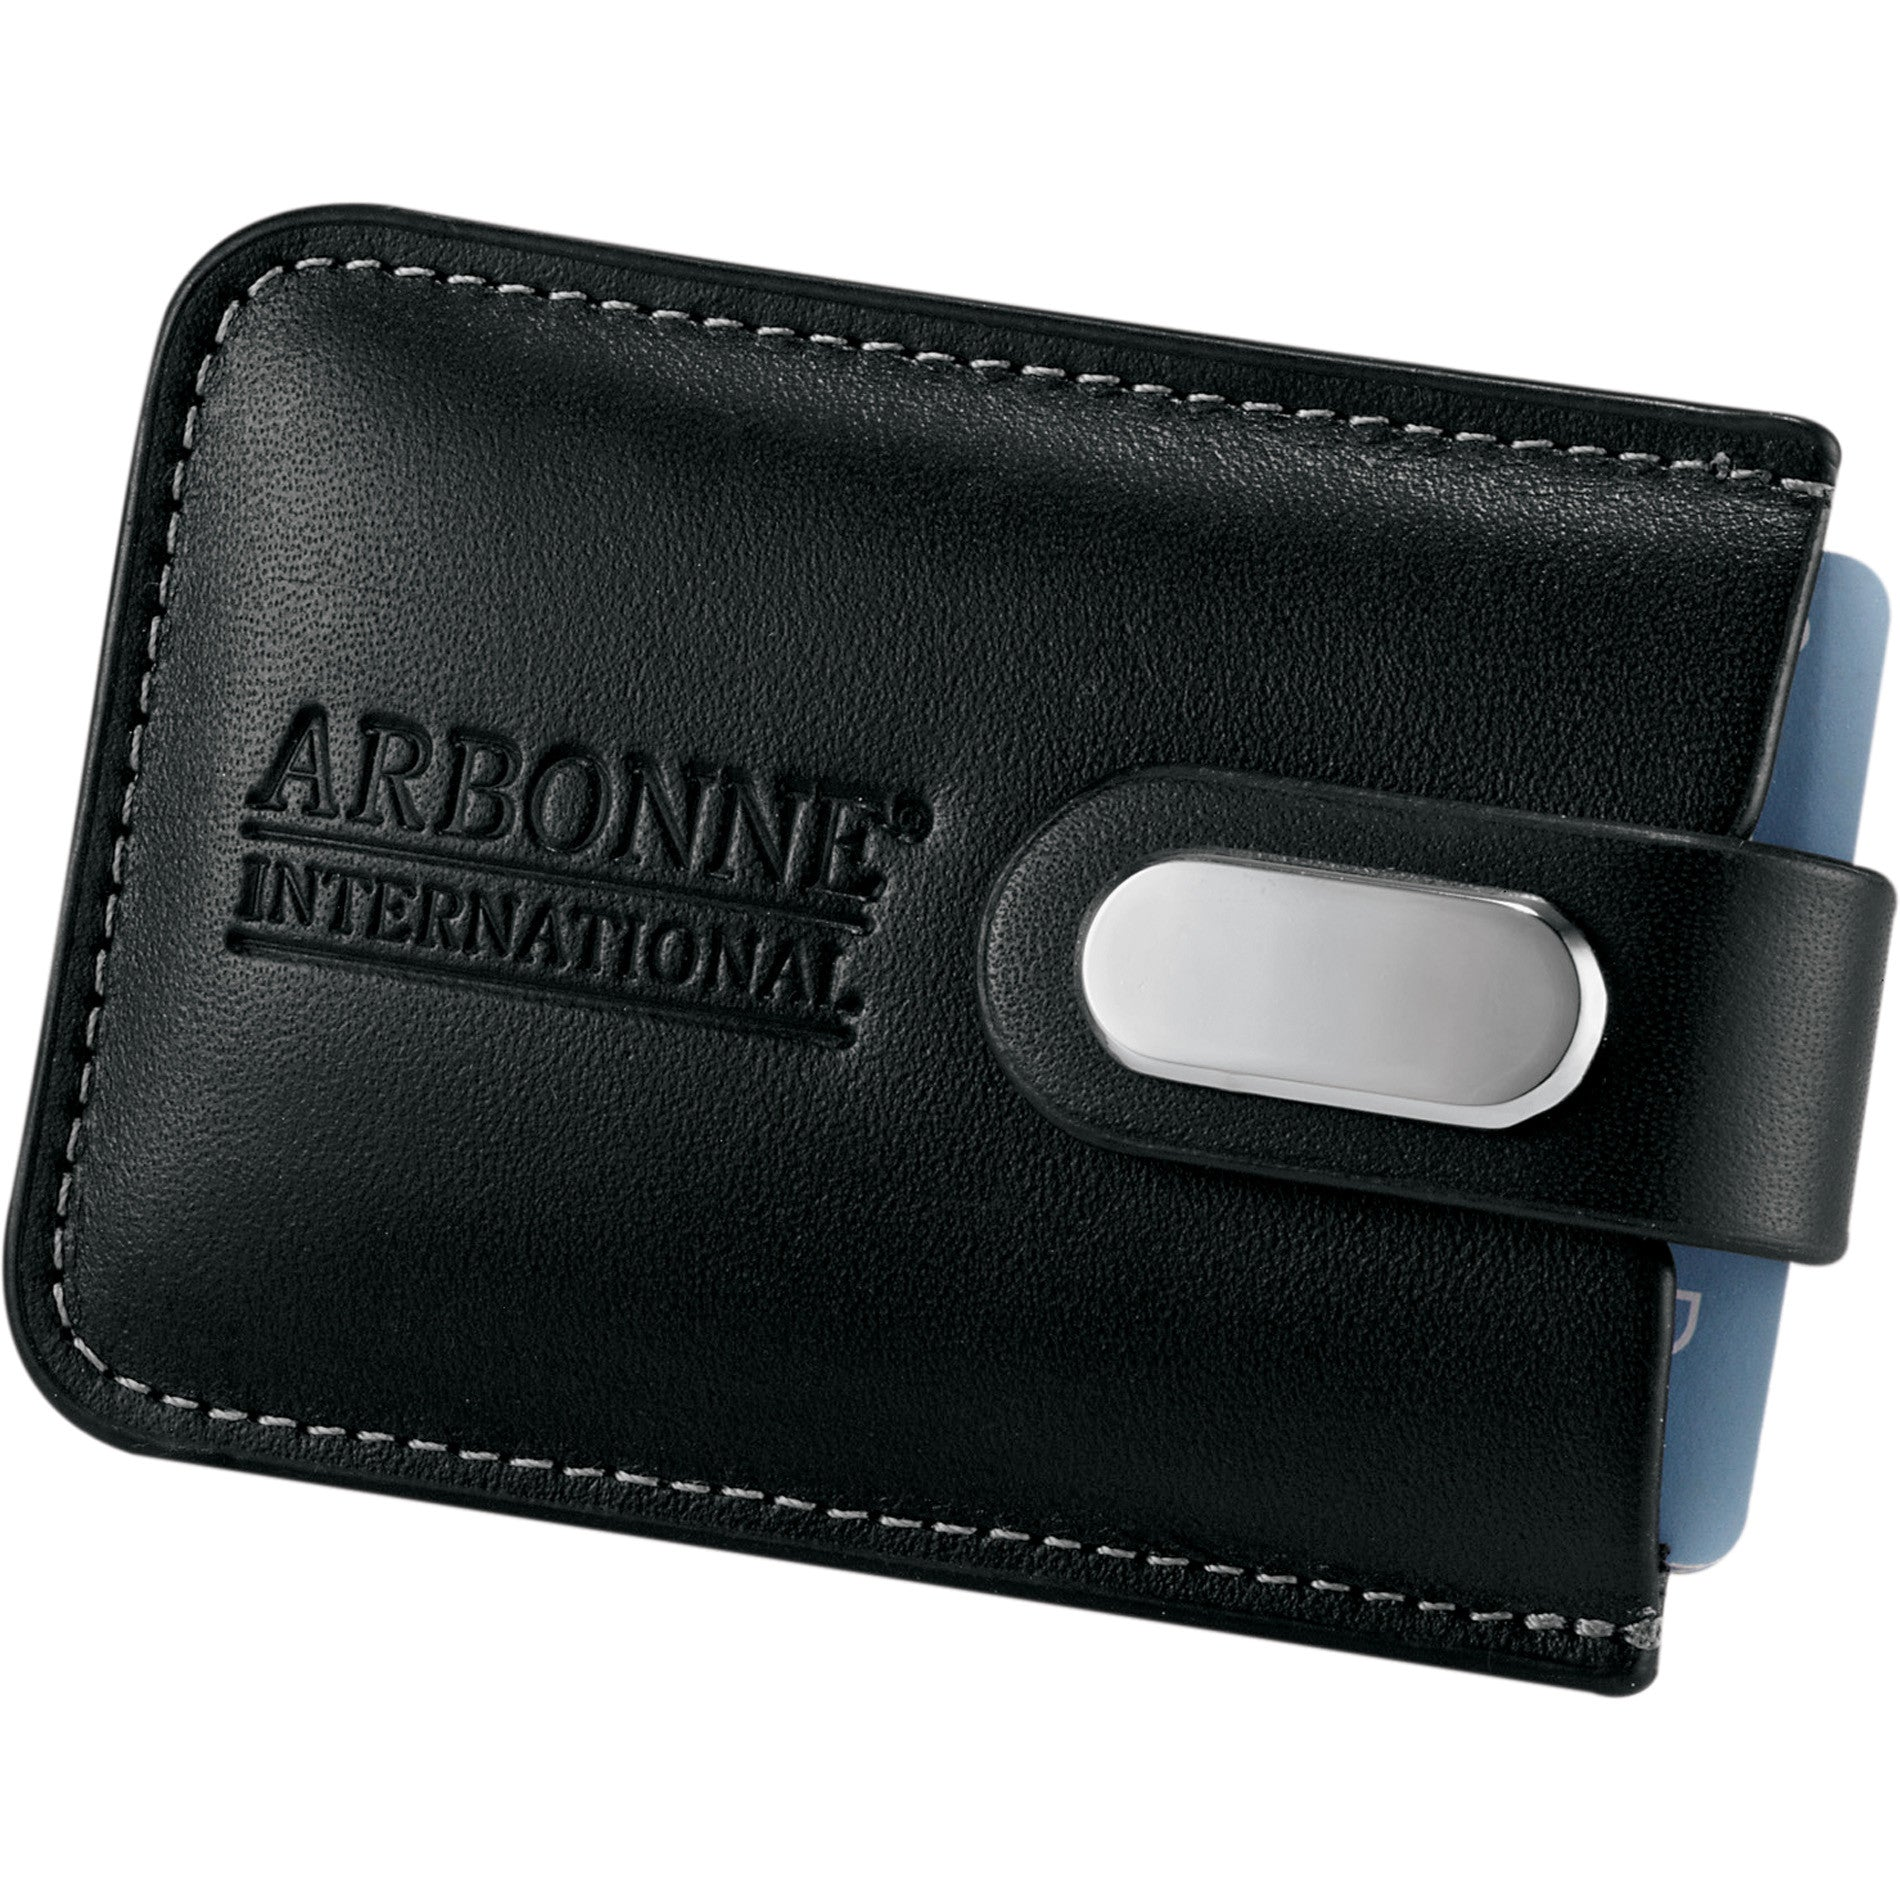 Your Logo on Business Card Holder and Leather Card Case - PROMOrx